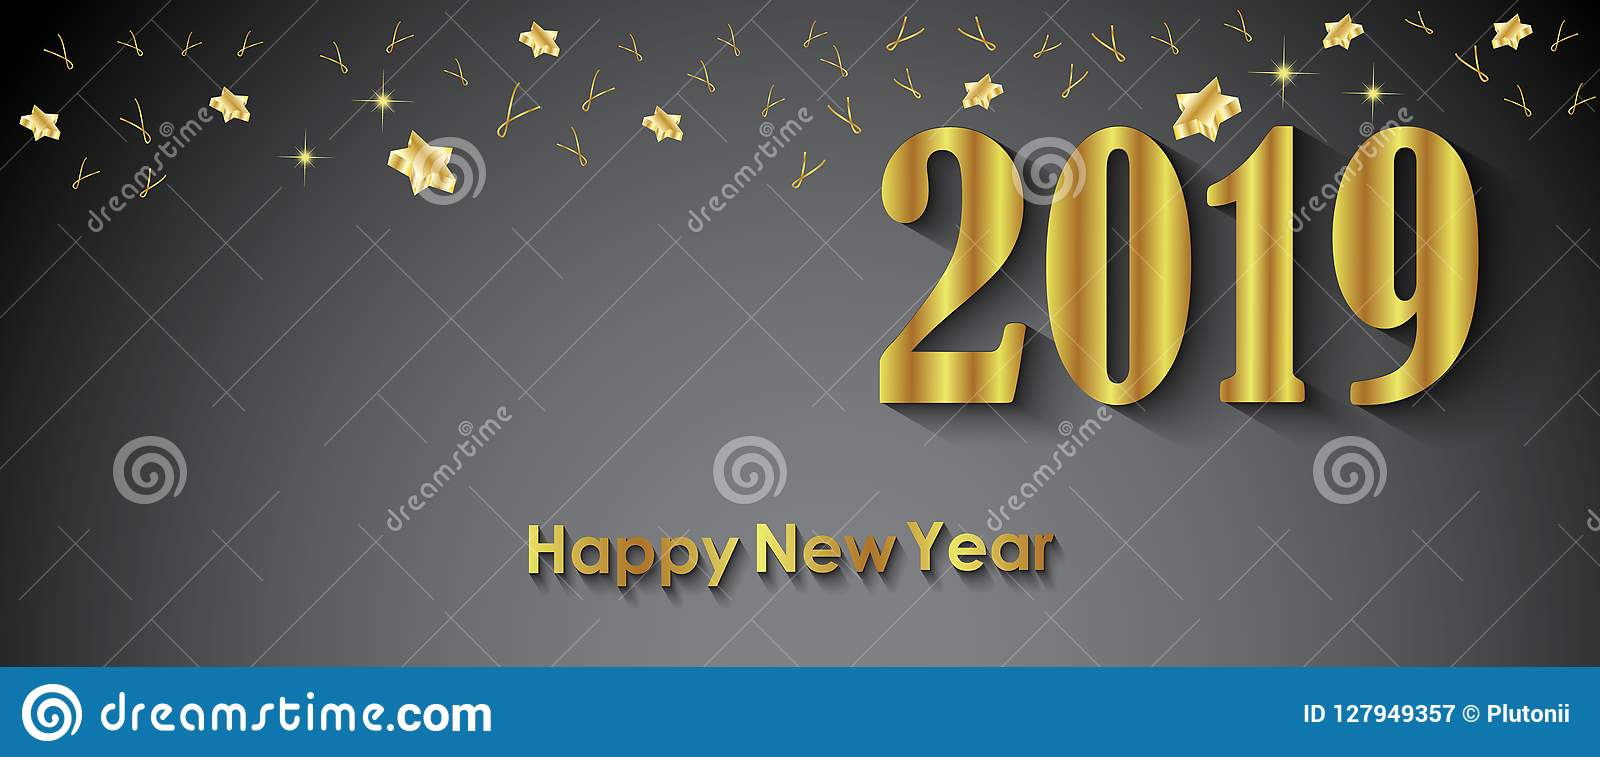 2019 happy new year background for your invitations festive posters greetings cards